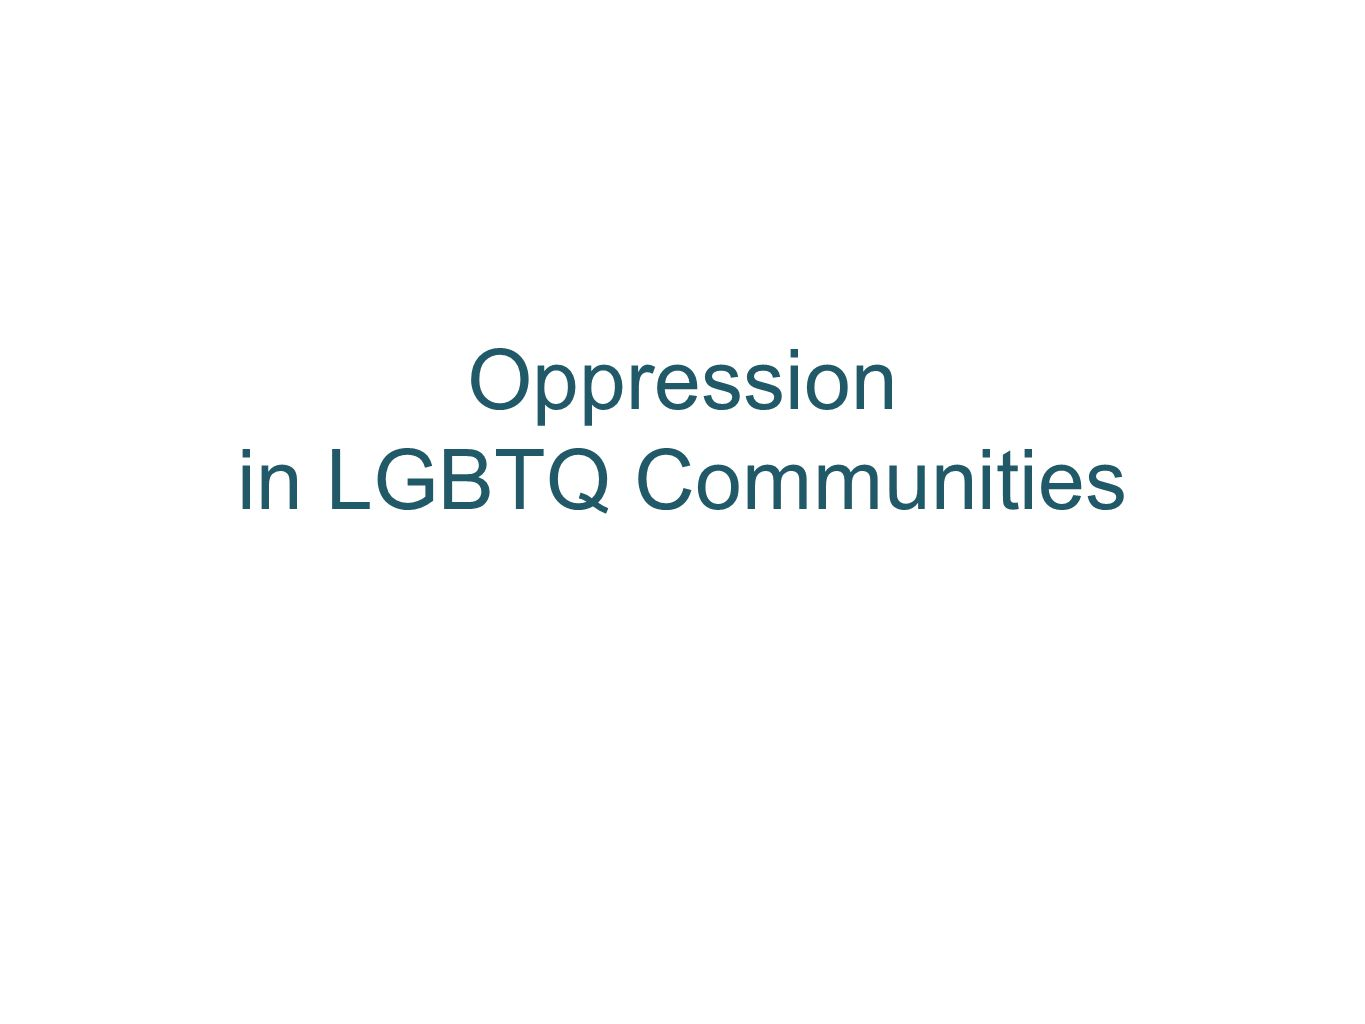 Oppression in LGBTQ Communities